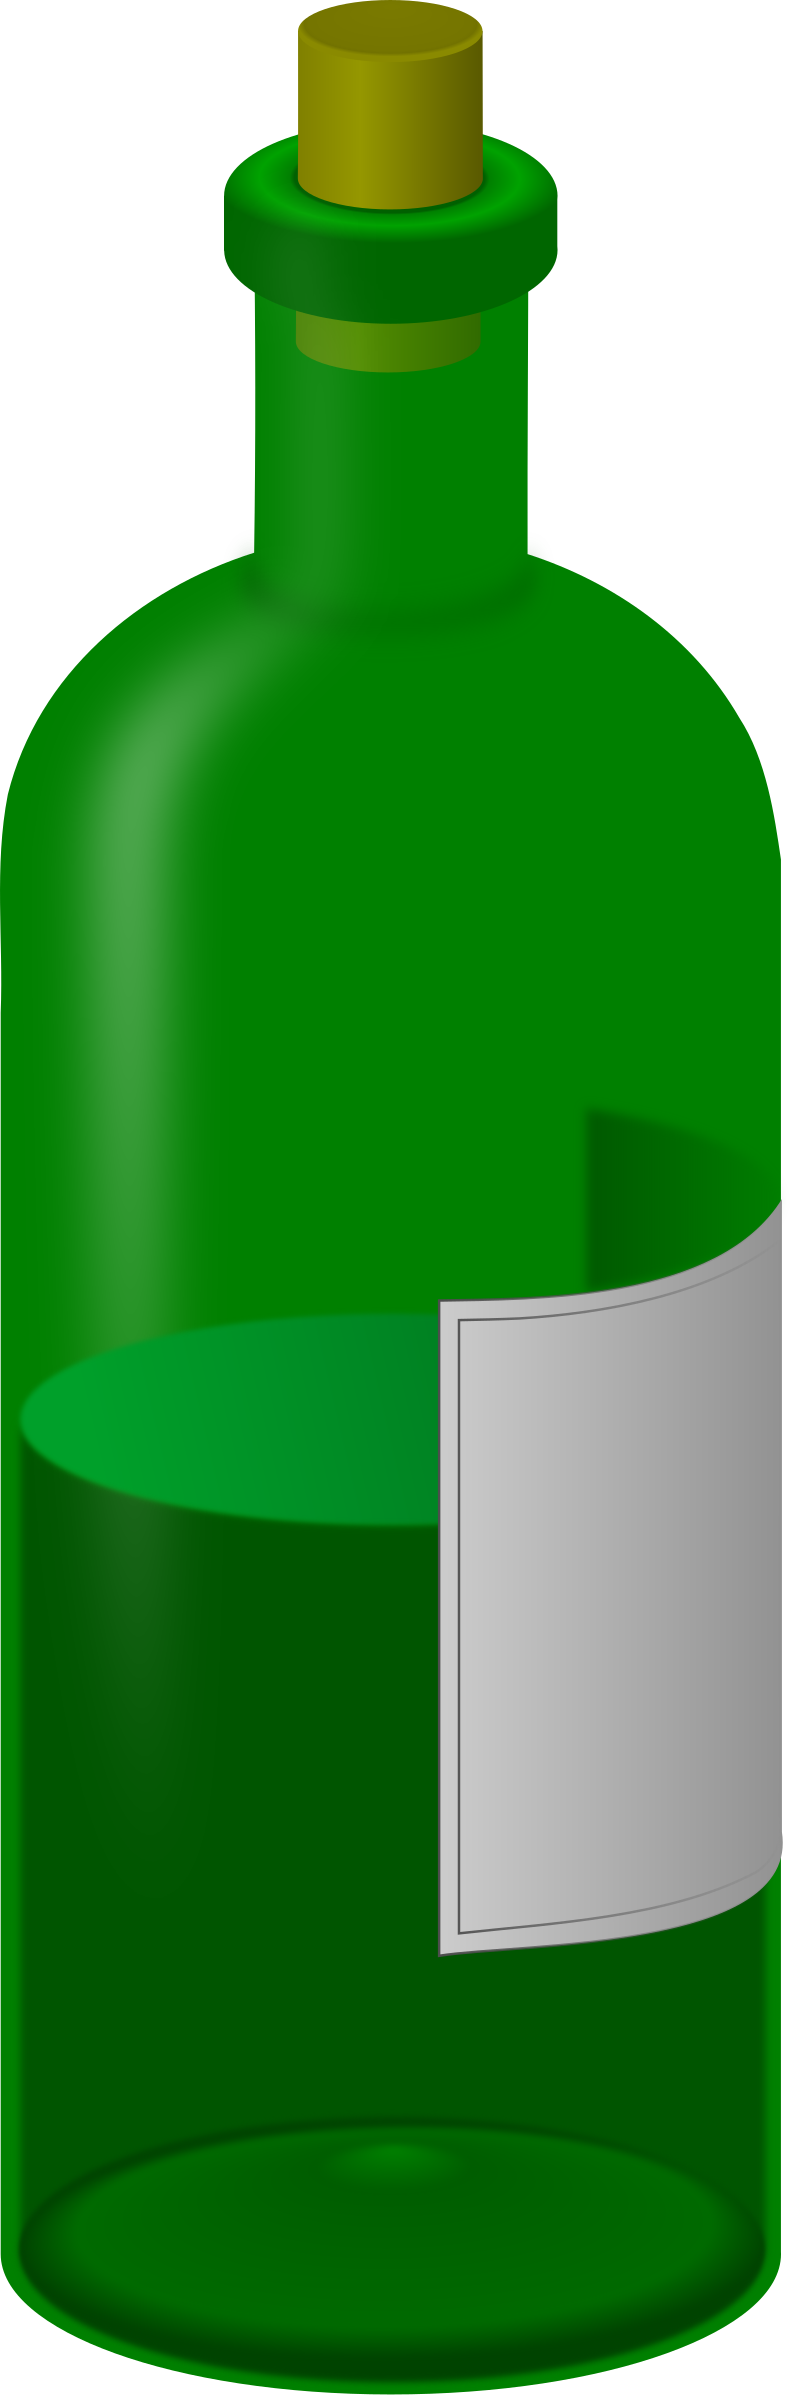 wine bottle with label by jarda